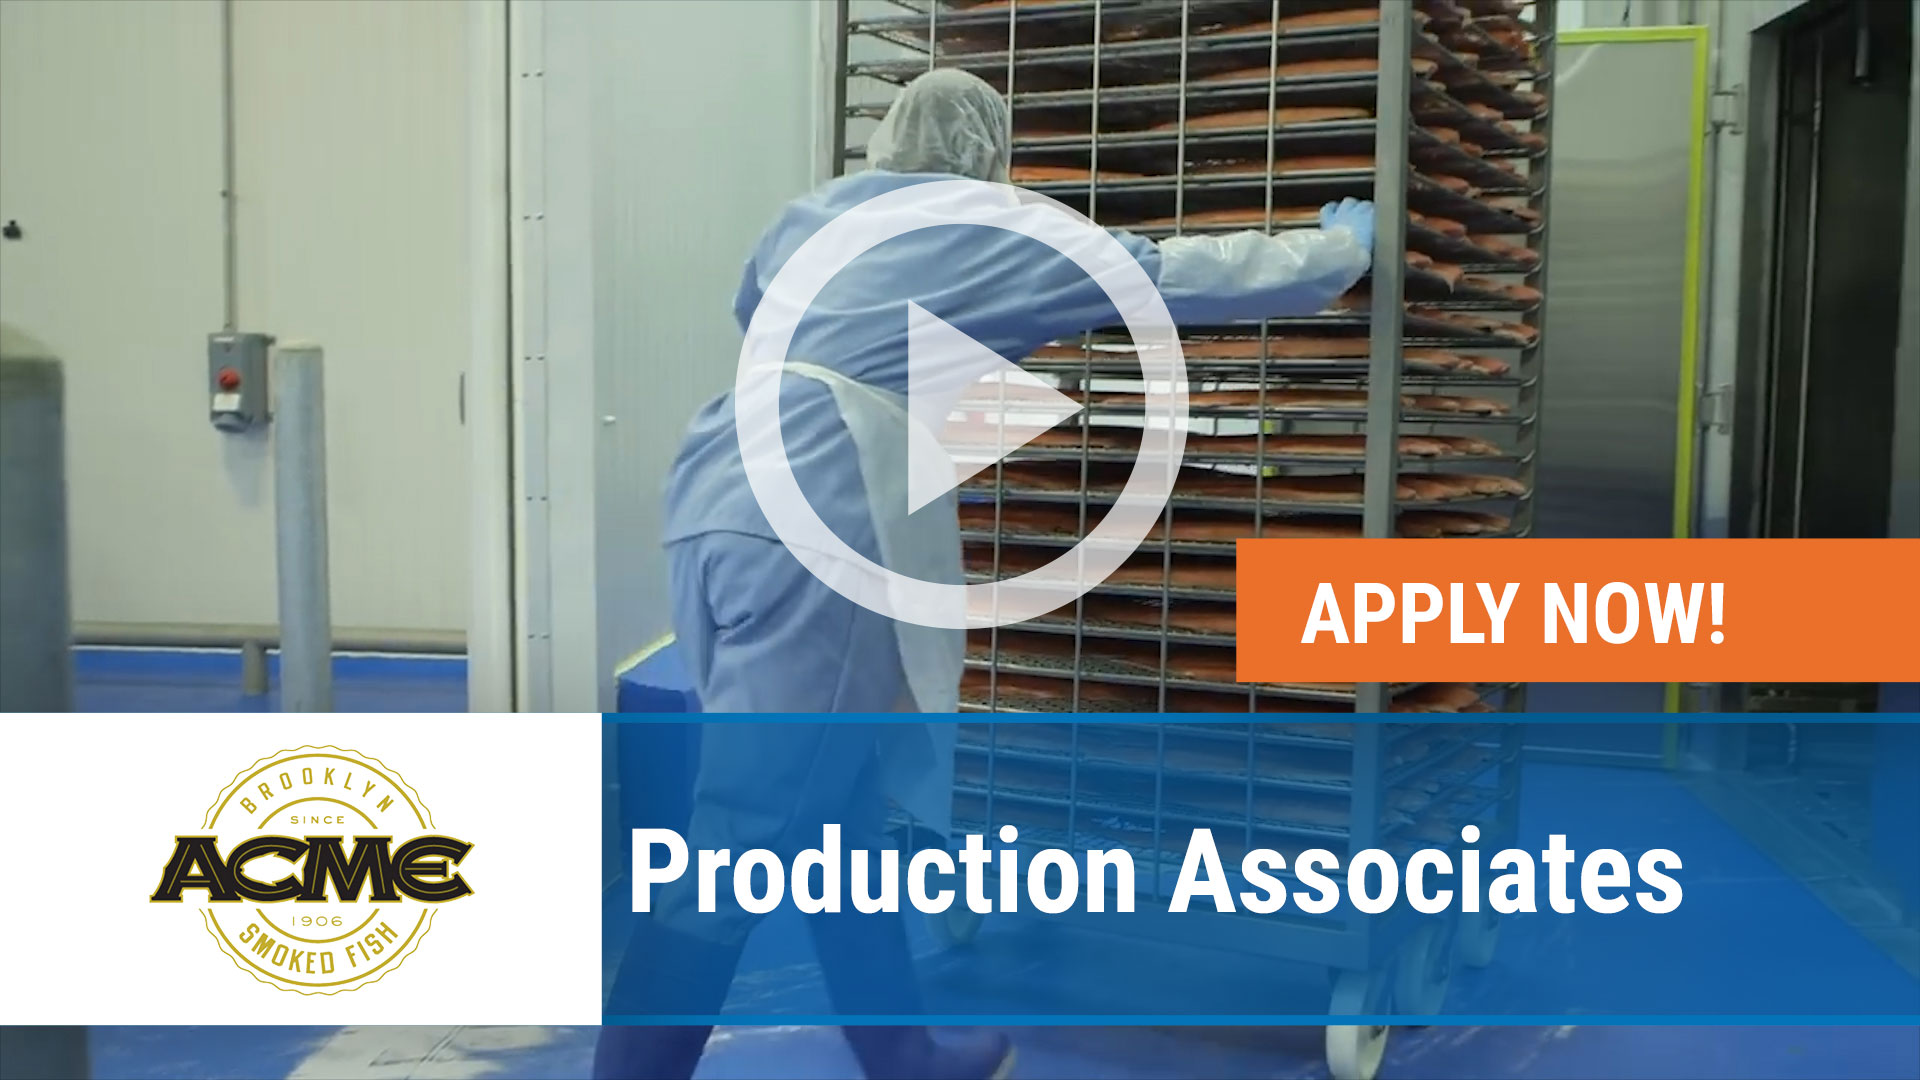 Watch our careers video for available job opening Production Associates for Acme Smoked Fish in Wilmington, NC